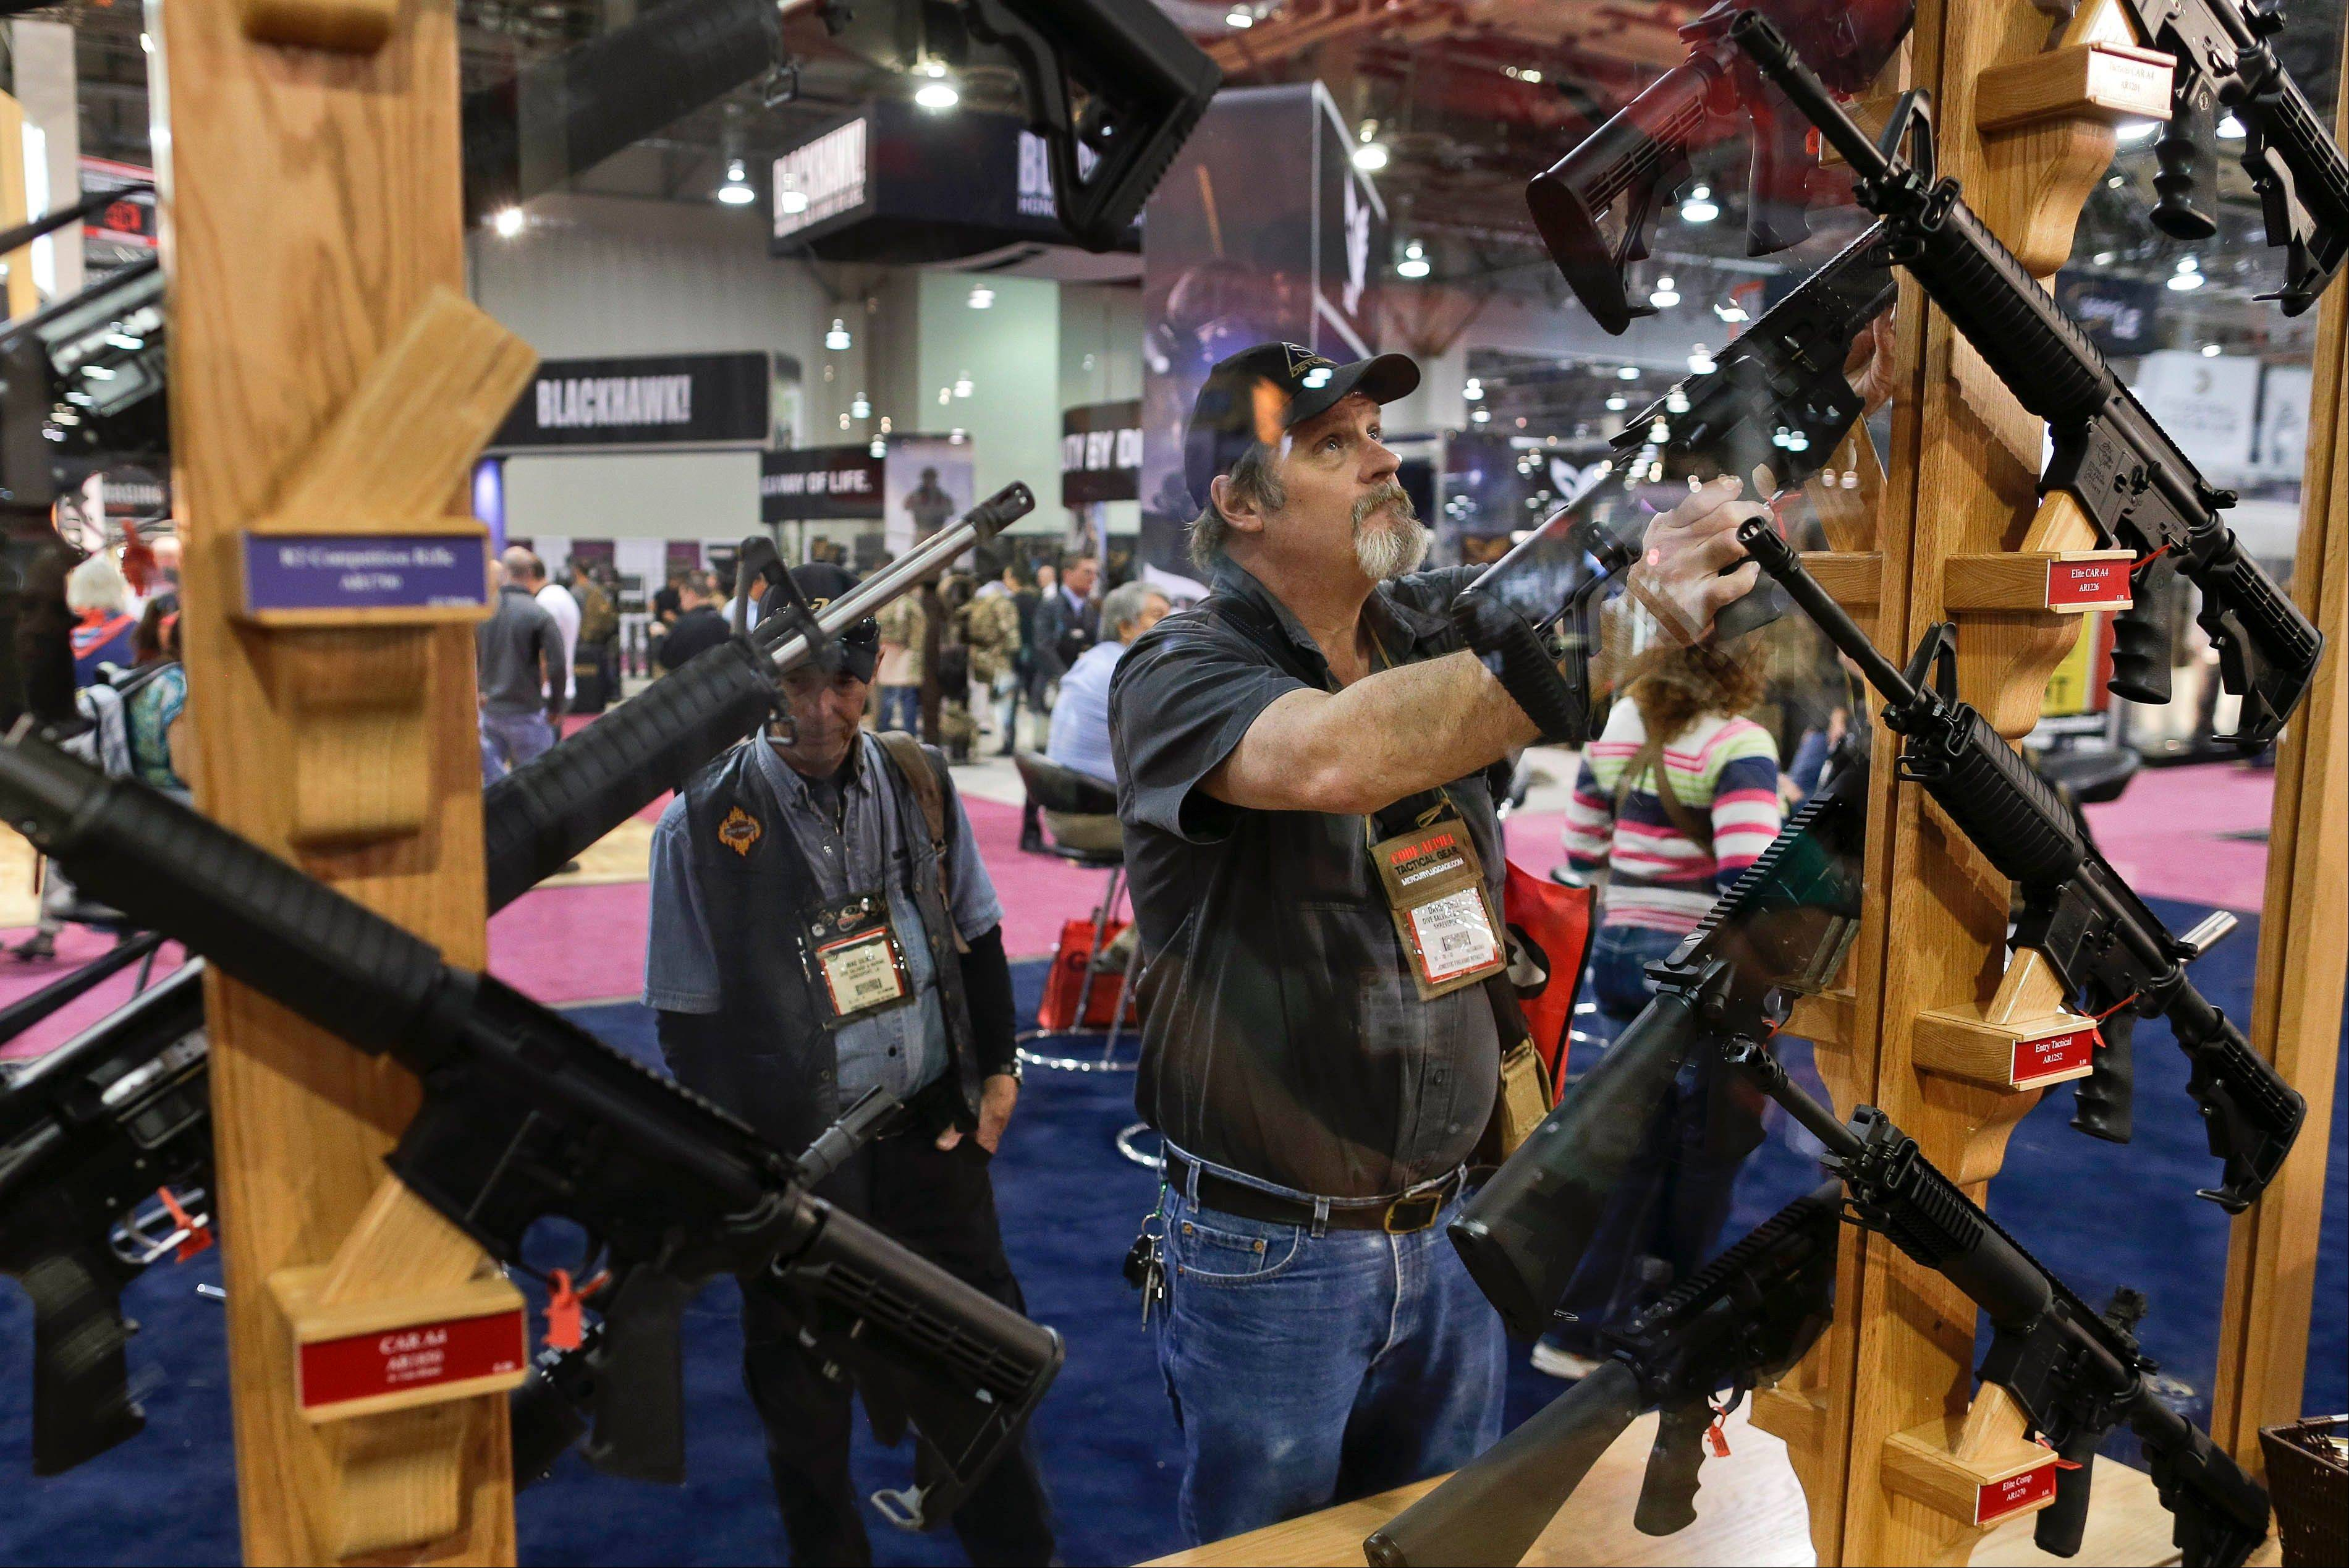 David Corley of Shreveport, La., replaces a rifle on its display rack Thursday while browsing through the Rock River Arms display booth at the 35th annual SHOT Show in Las Vegas. The world�s largest gun and outdoor trade show ran through Friday.